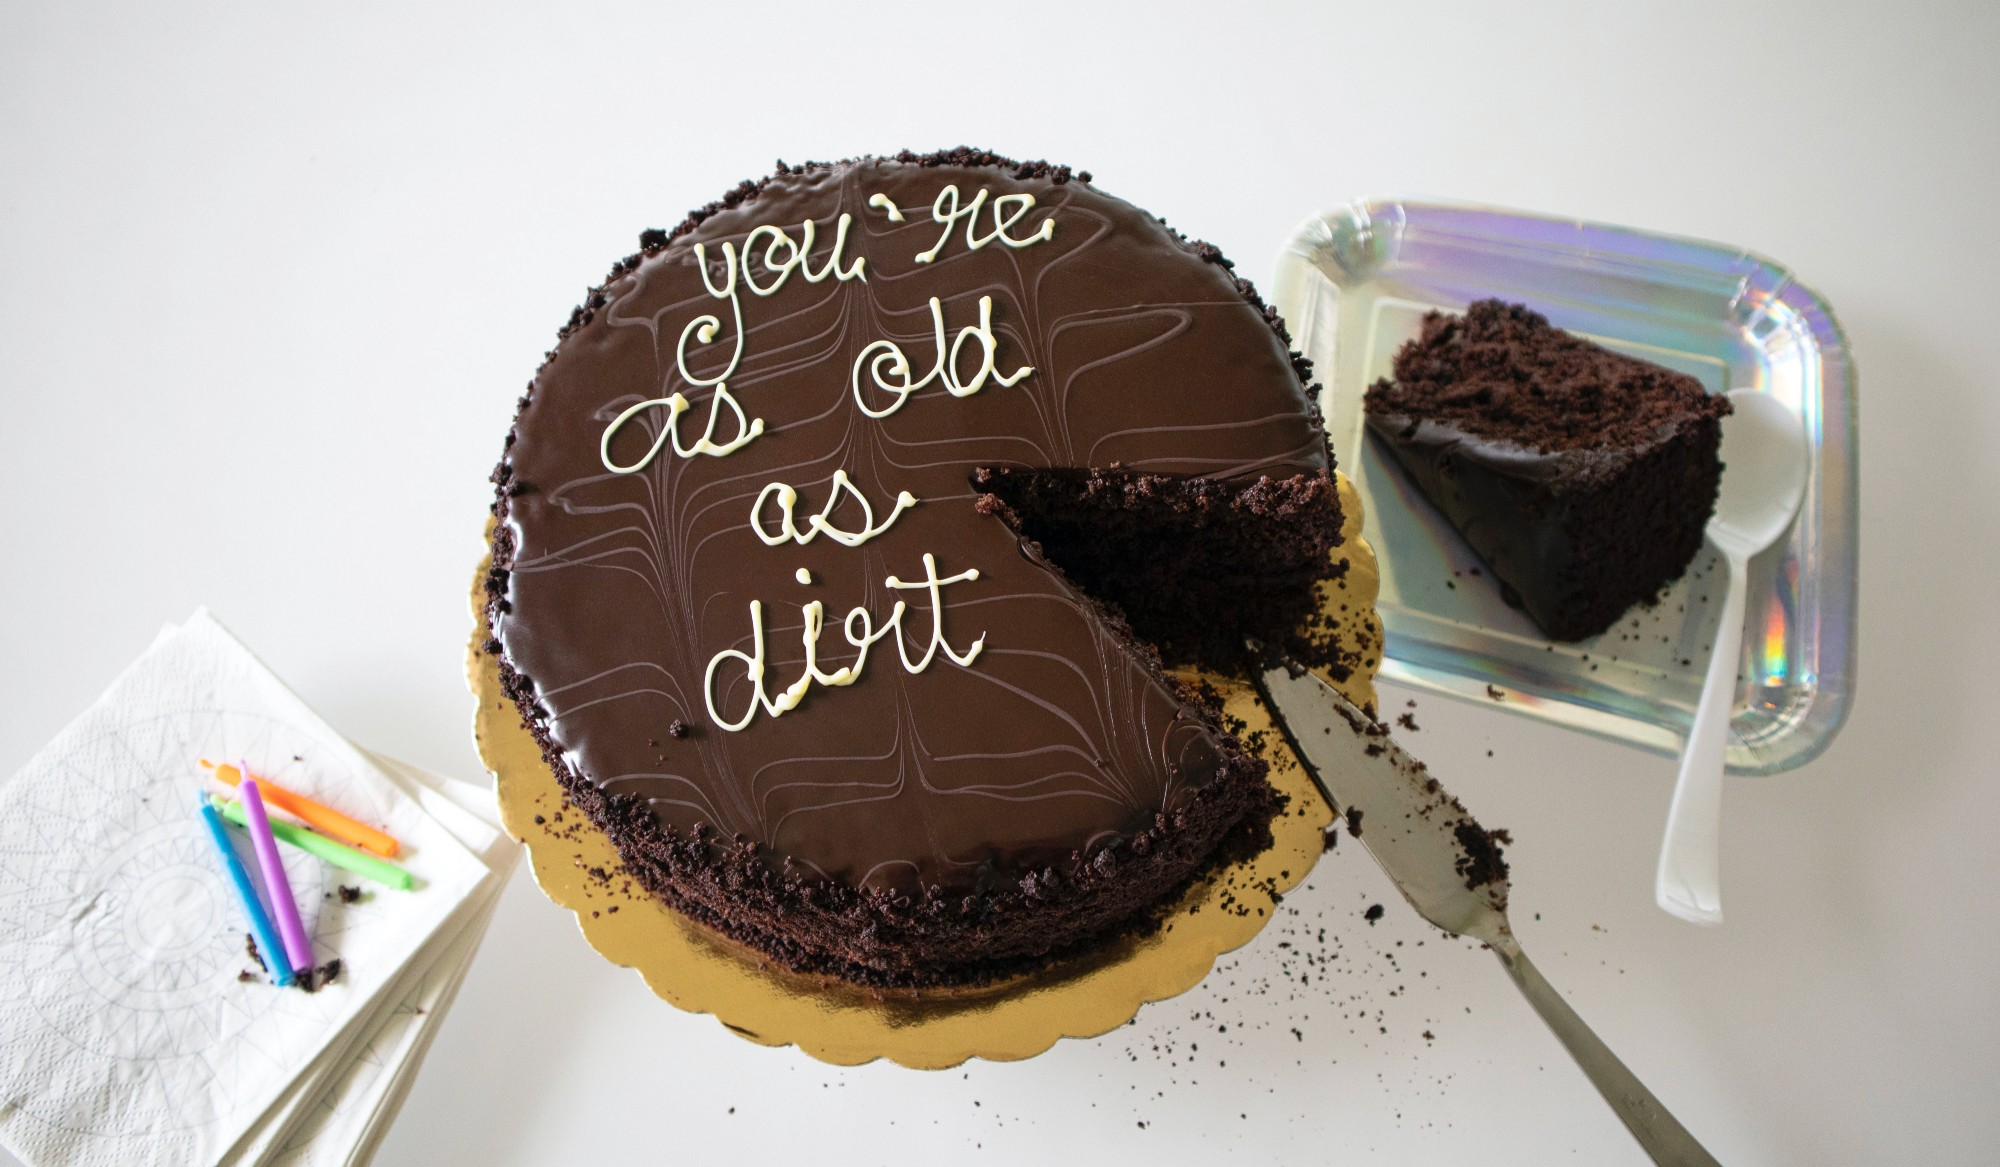 Chocolate birthday cake with the saying you're as old as dirt written on it with icing.